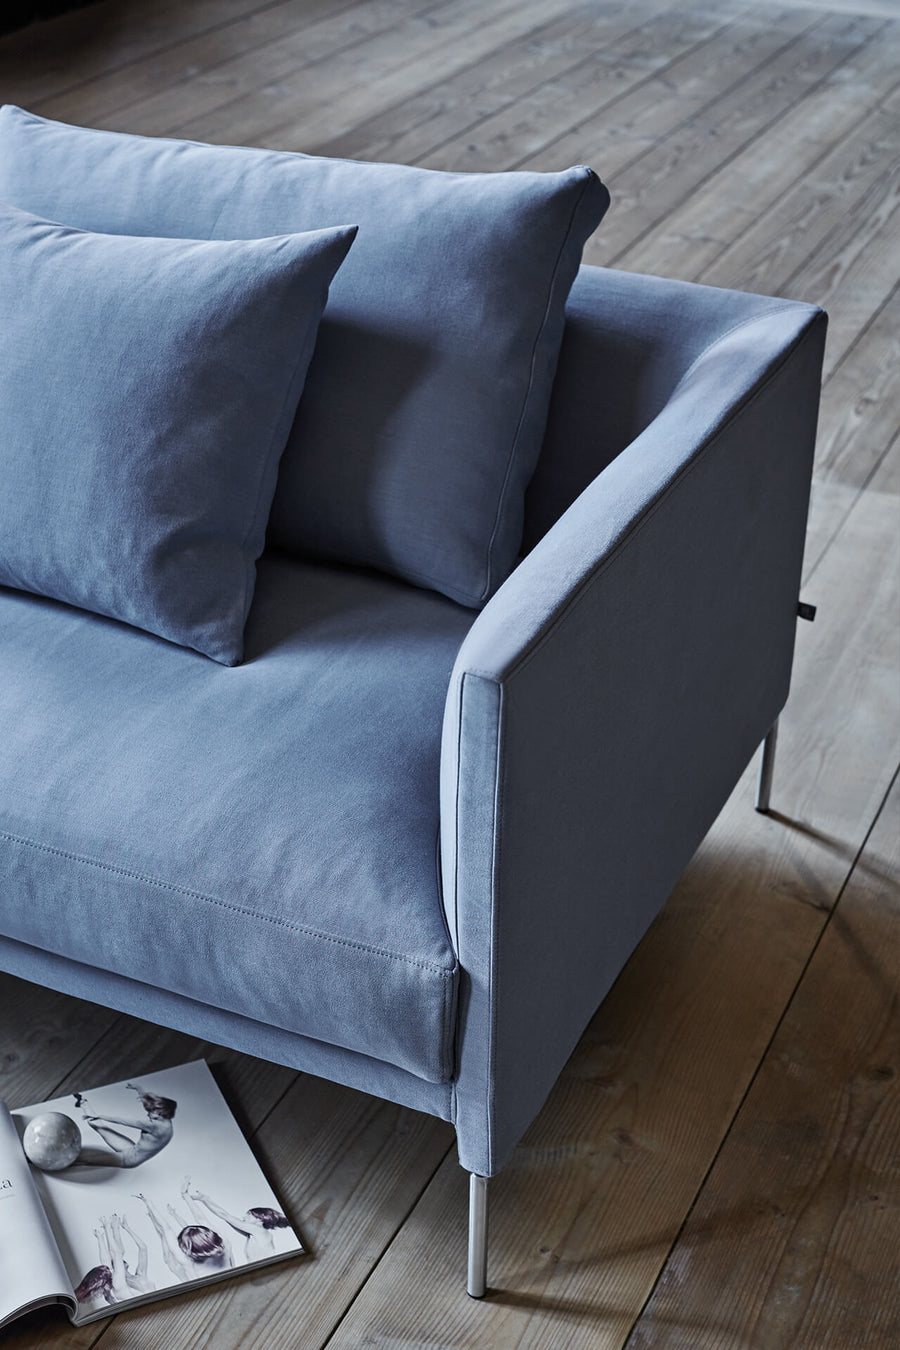 2019 Eilersen Sofa Introductions